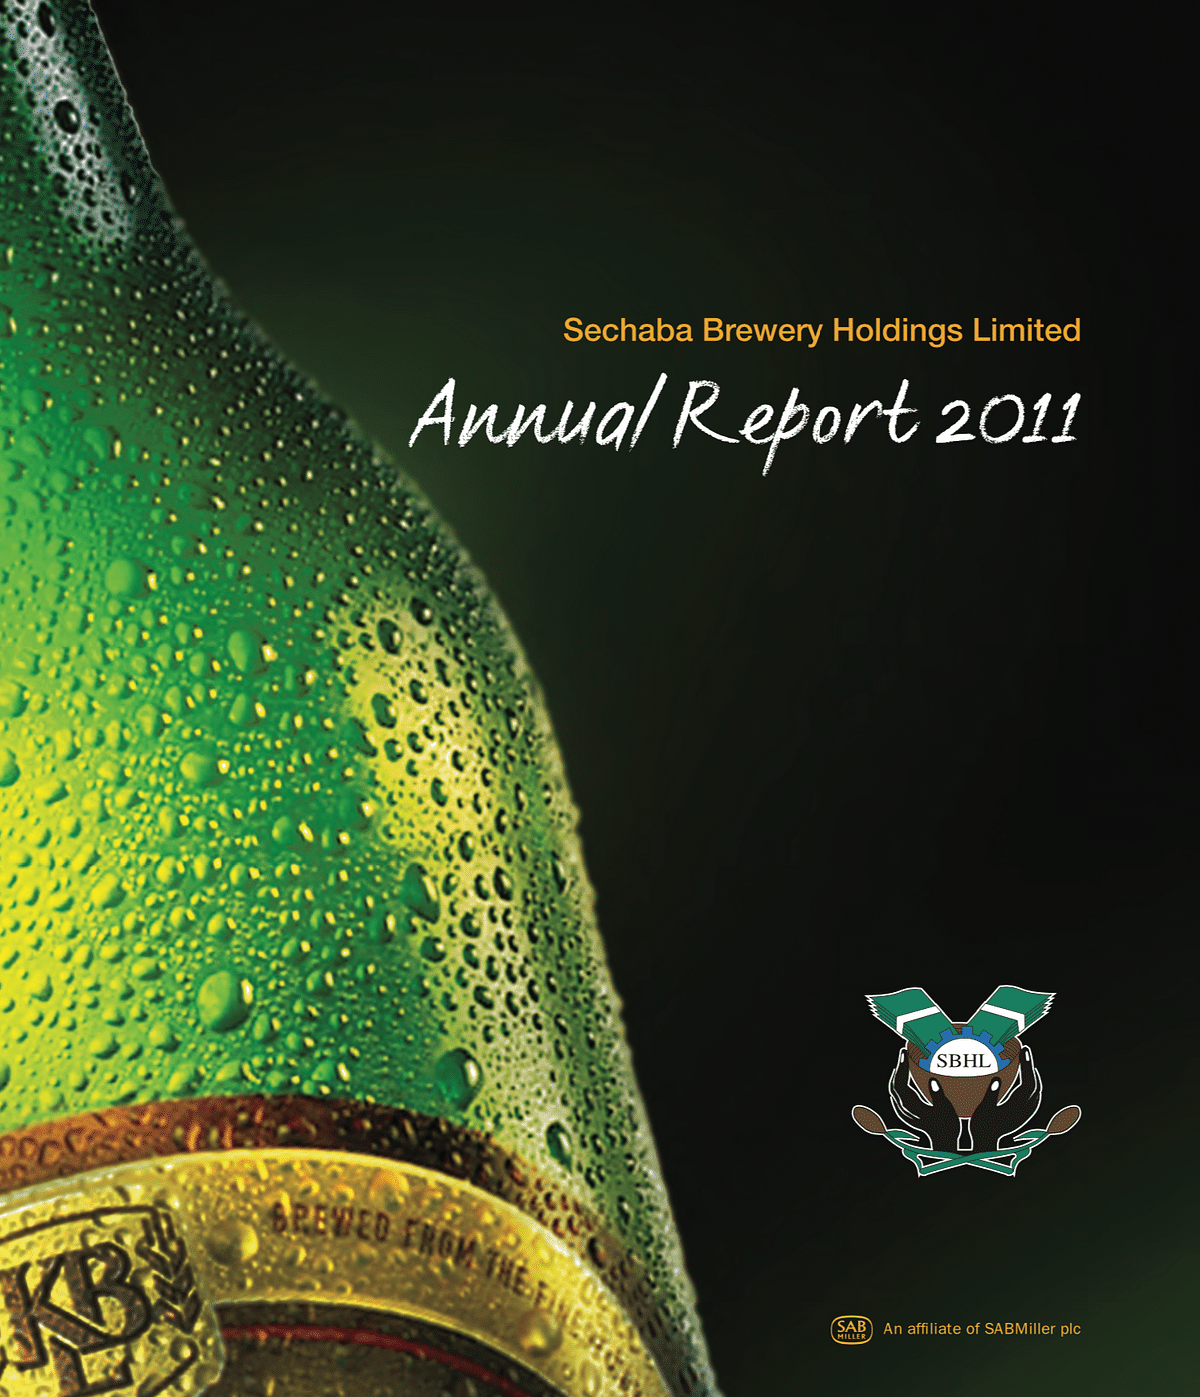 Sechaba Breweries Holdings Limited Annual Report 2011 cover